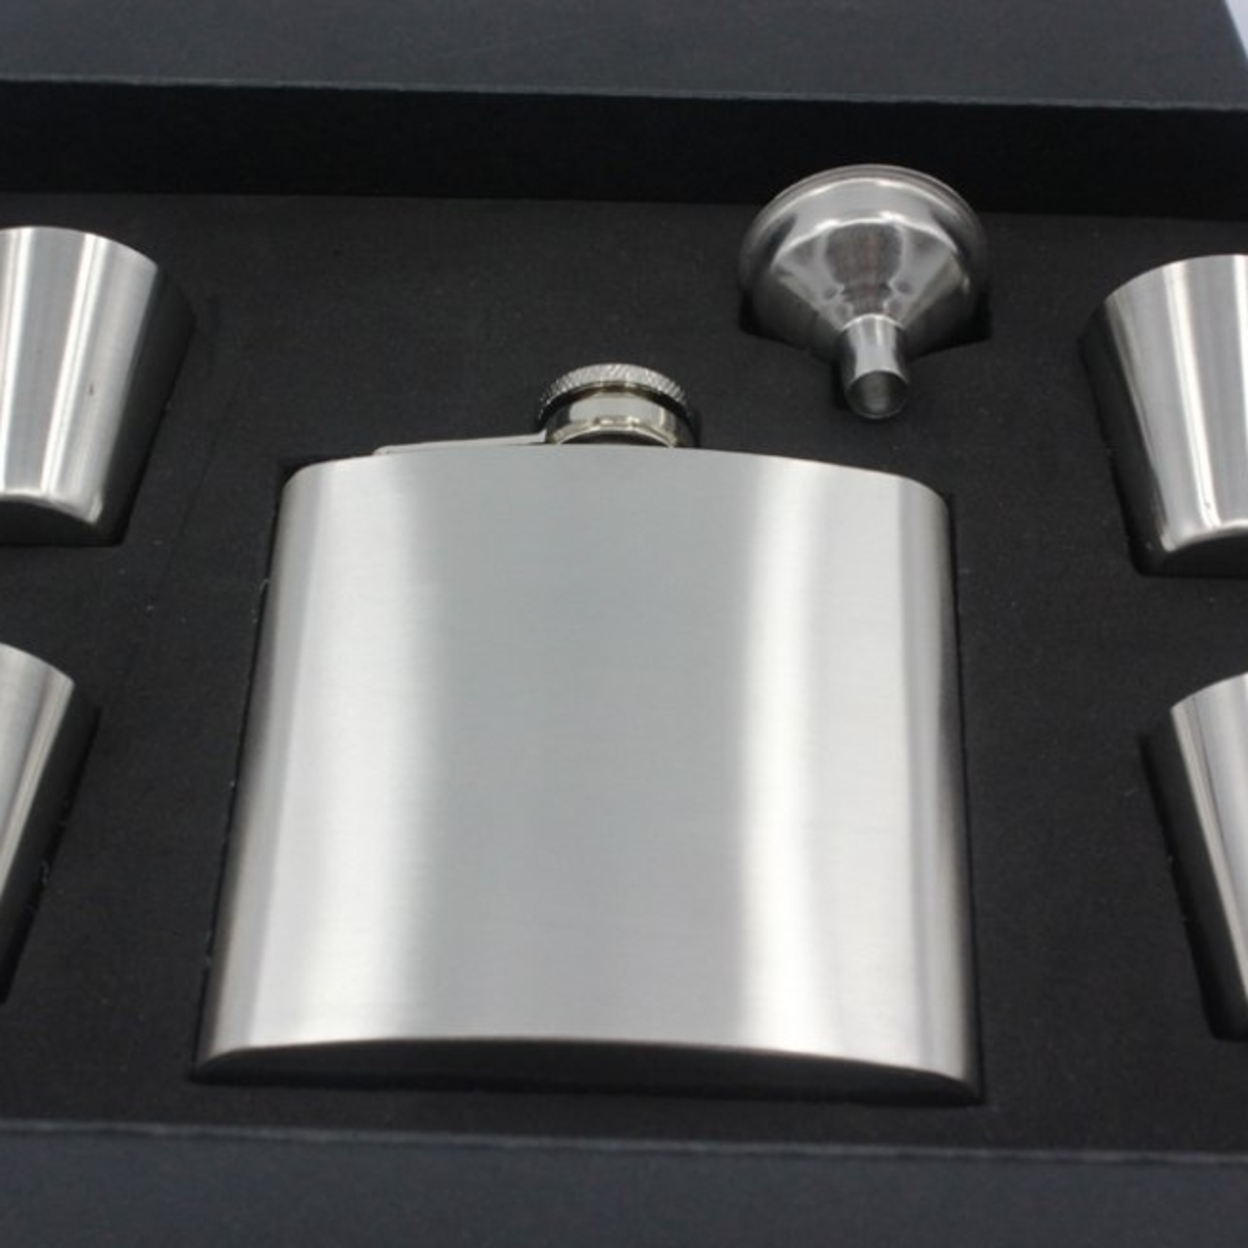 6 oz Flask with Funnel and 4 Shot Glasses, Stainless Steel Hip Flask 59f5f4a62a00e42c690a6f0e